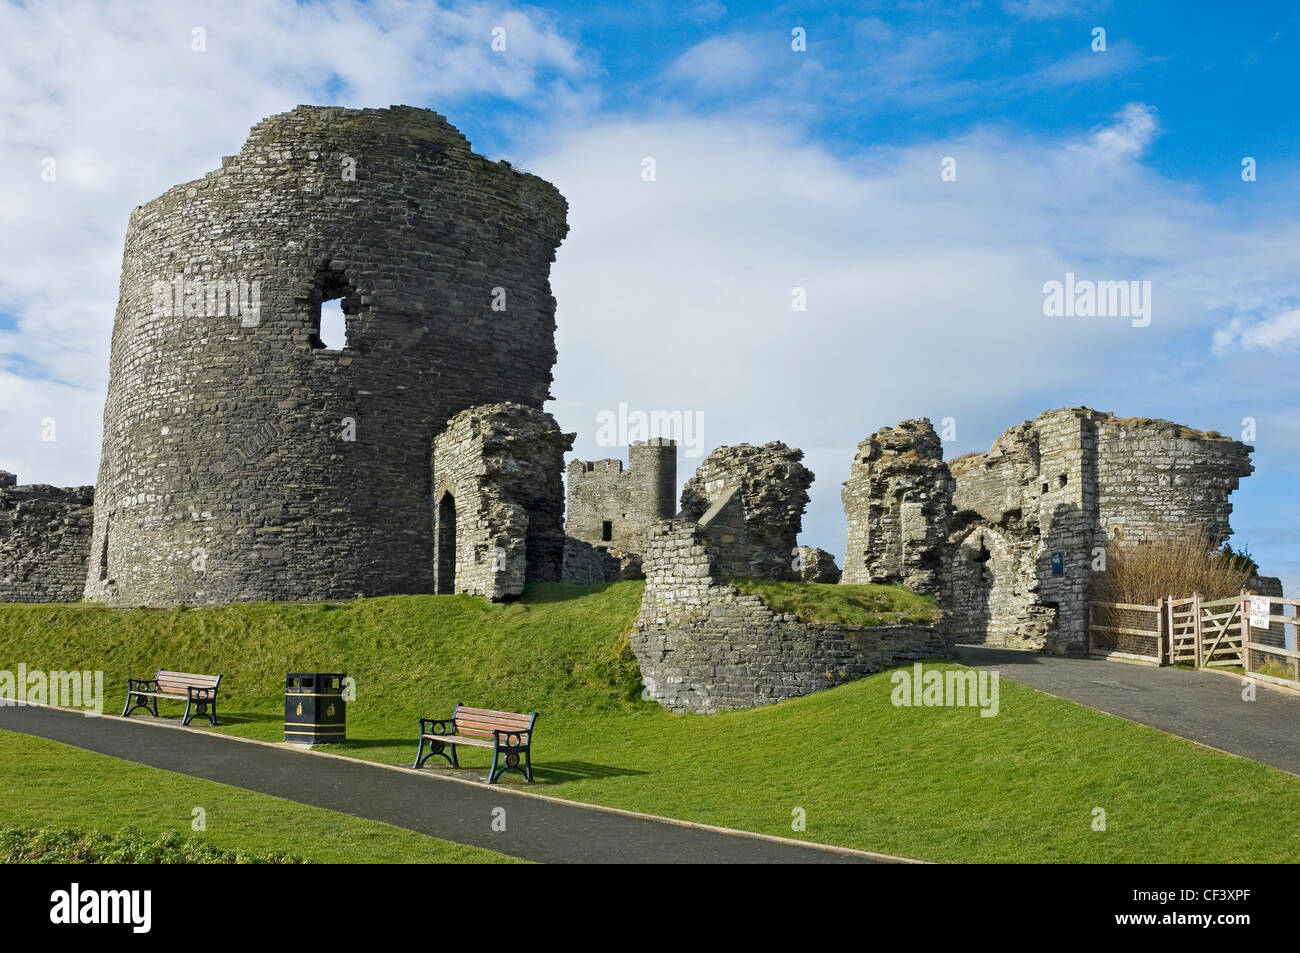 Ruins of Aberystwyth Castle built in 1277 by King Edward I. - Stock Image